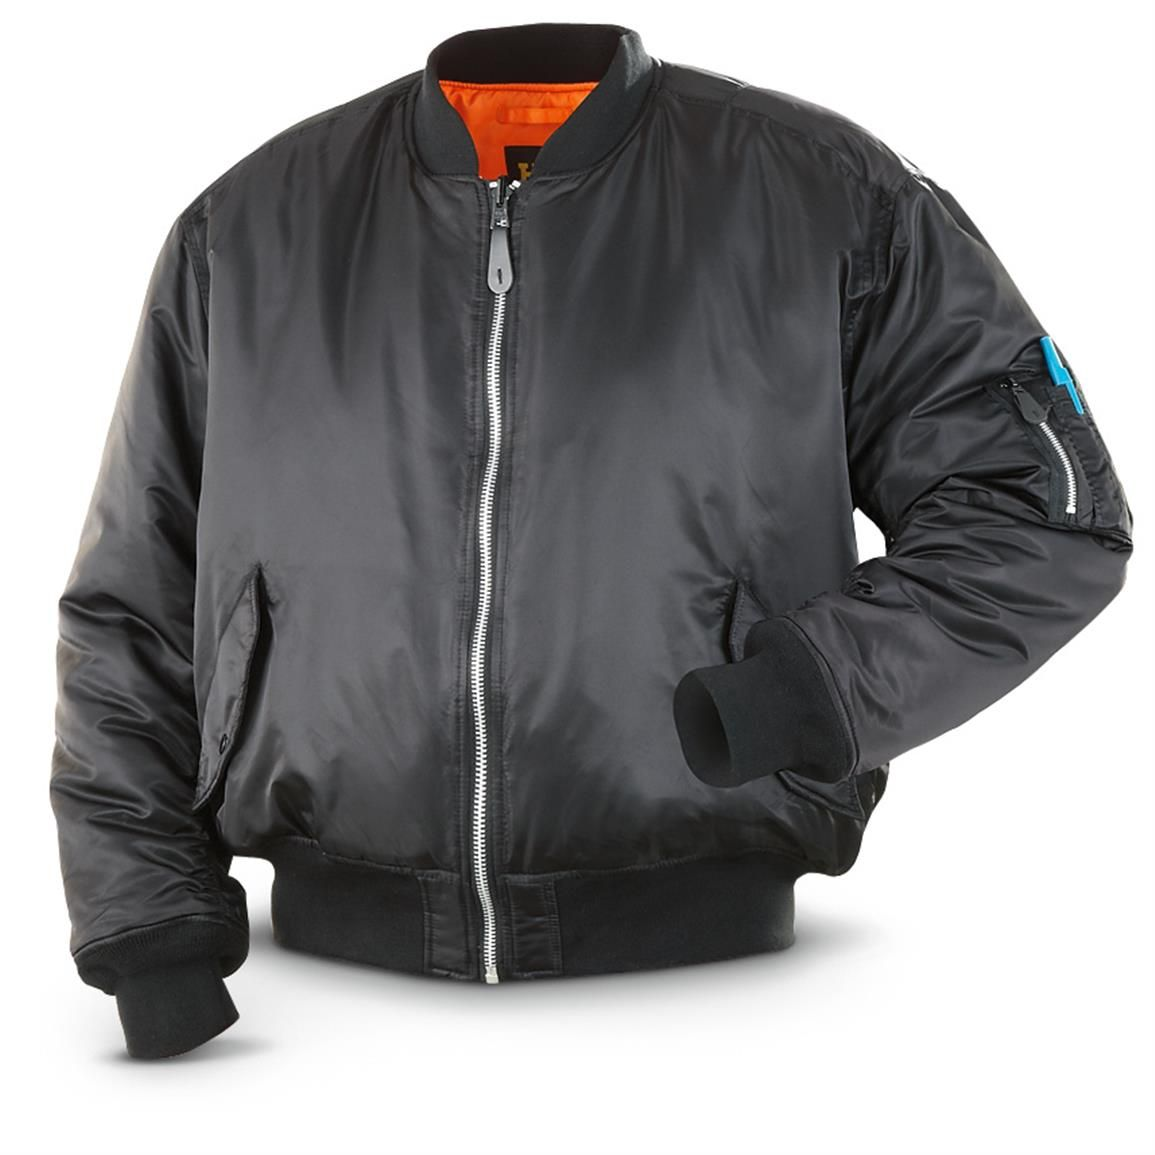 HQ ISSUE Men's MA-1 Bomber Flight Jacket, Black | Fashion Collab ...